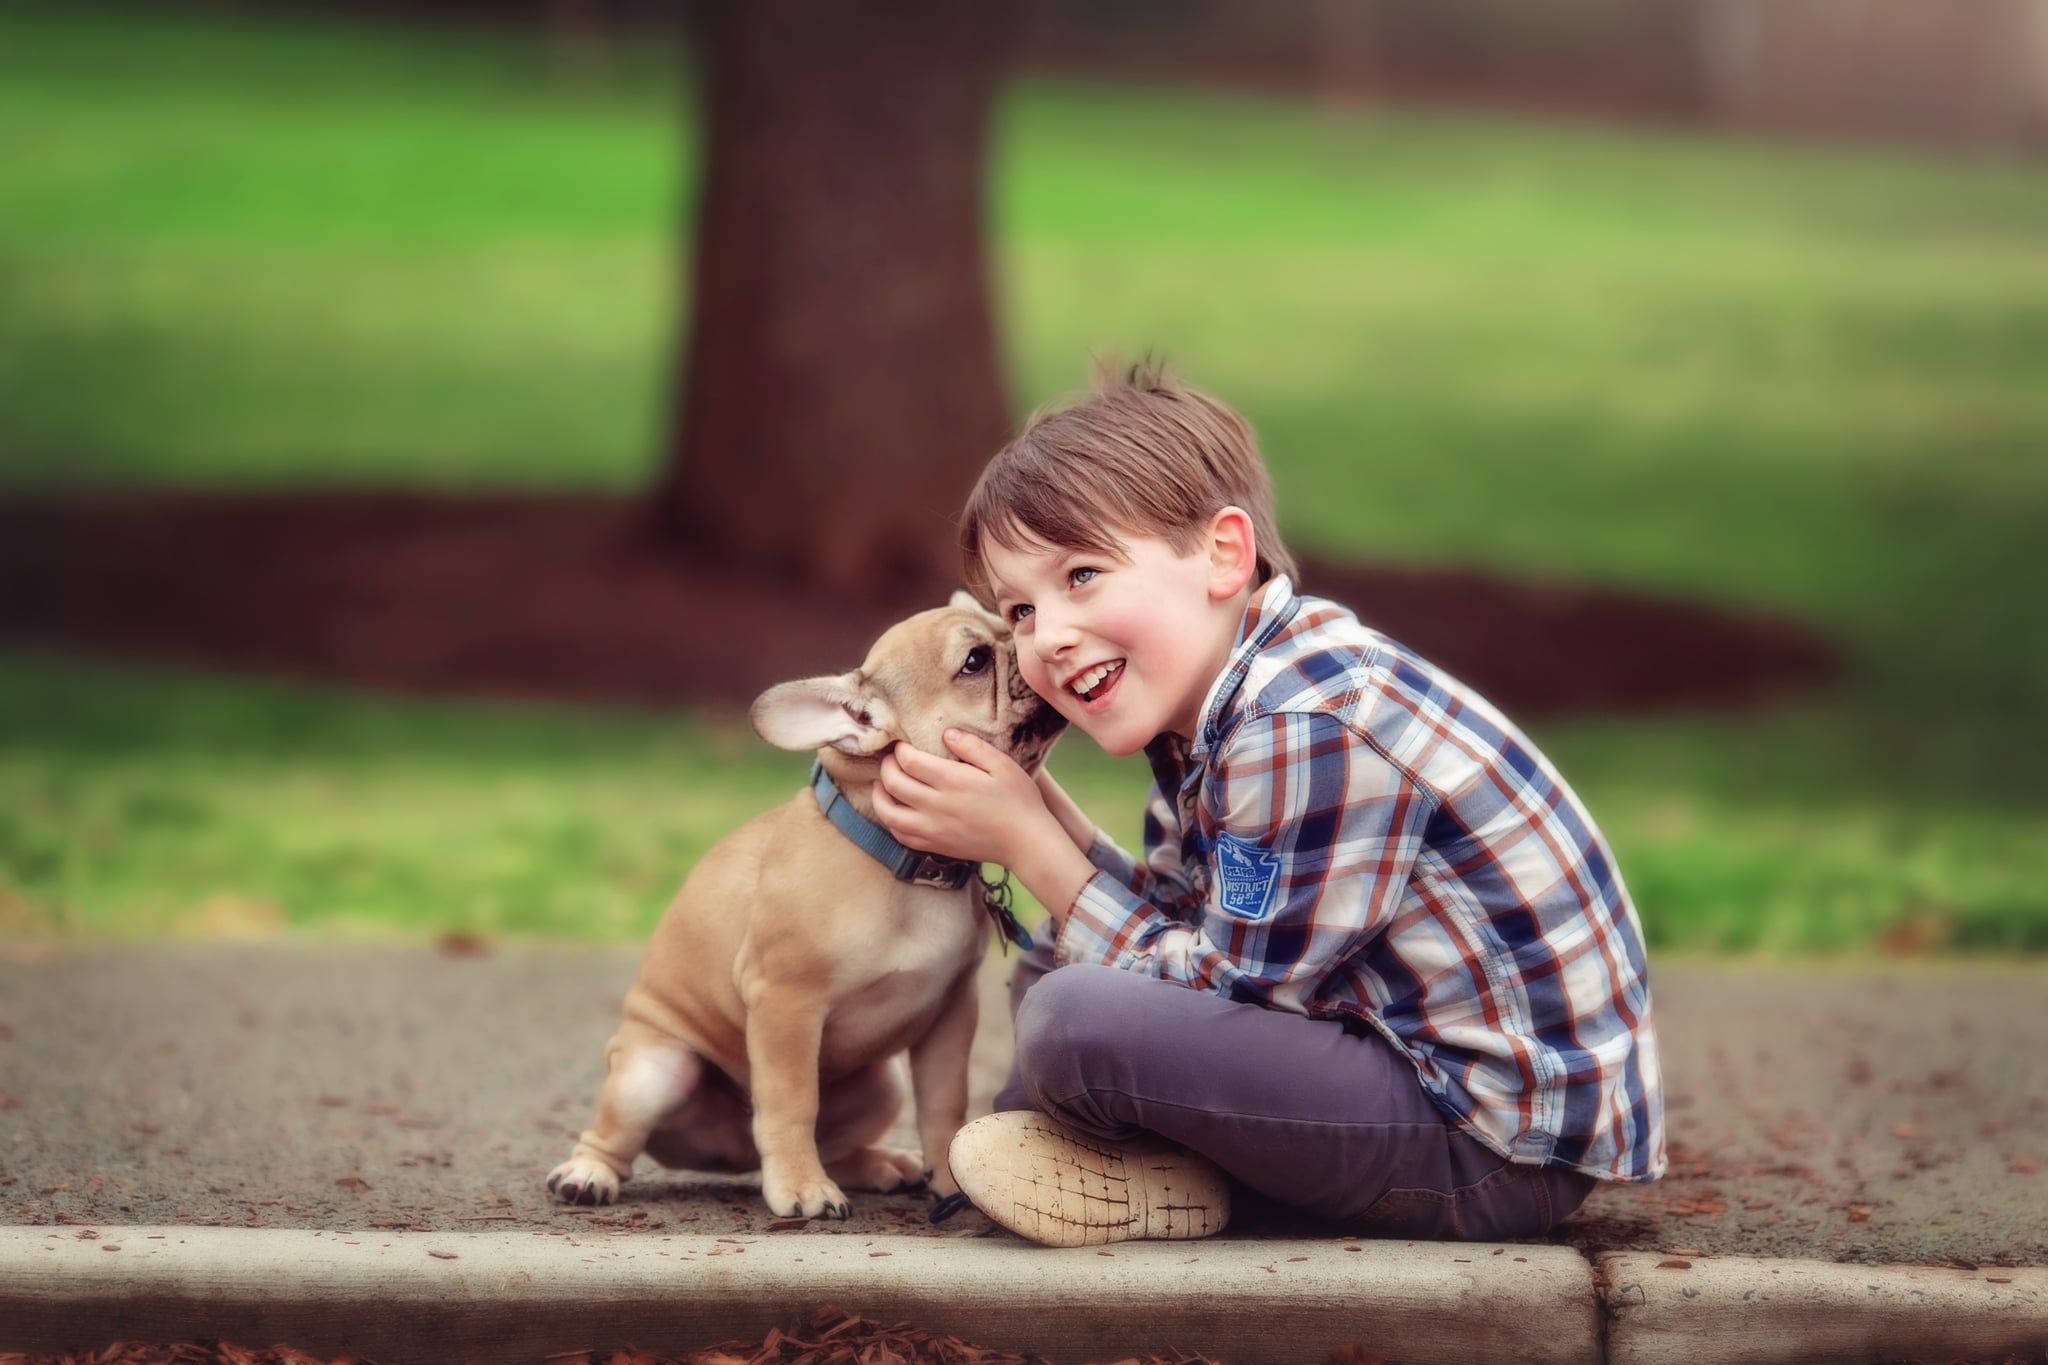 Cute Photos Kids Dogs Need A Pick Me Up These Adorable Photos Of Kids And Dogs Will Do The Trick In 2021 Kid Friendly Jokes Funny Jokes For Kids Jokes For Kids